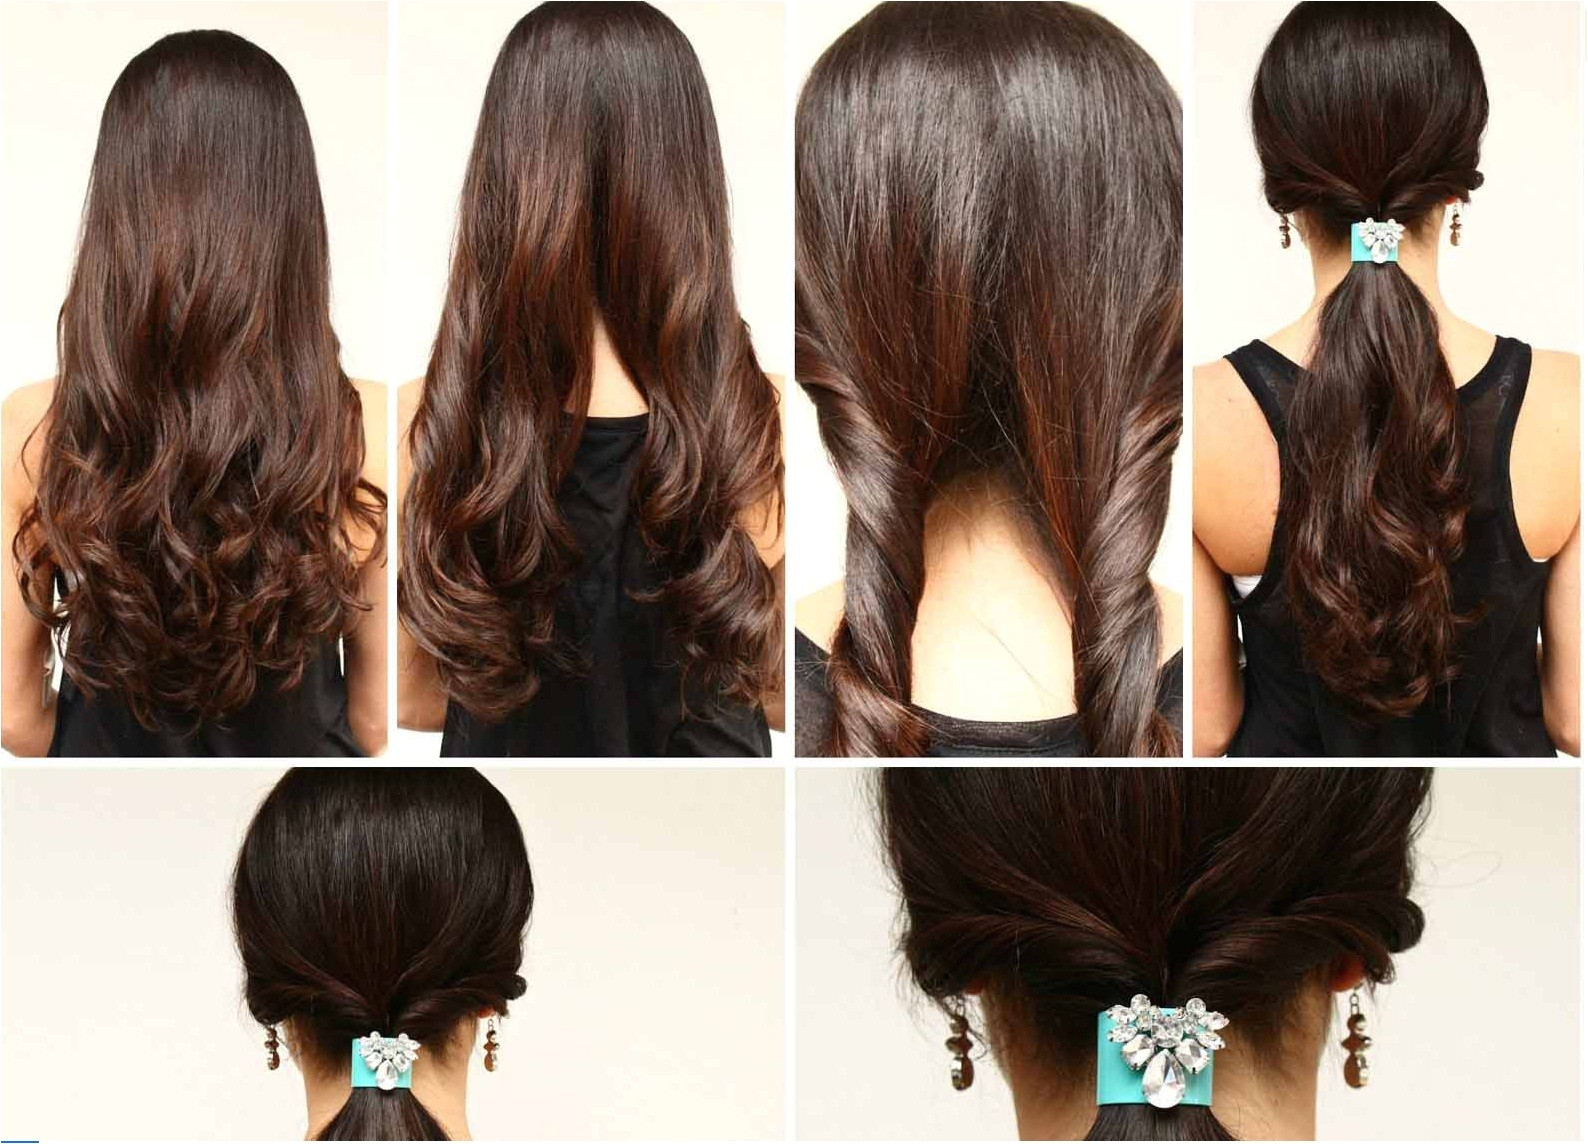 How to Make Easy Hairstyle at Home Latest Hairstyles for Stylish Girls 2015 16